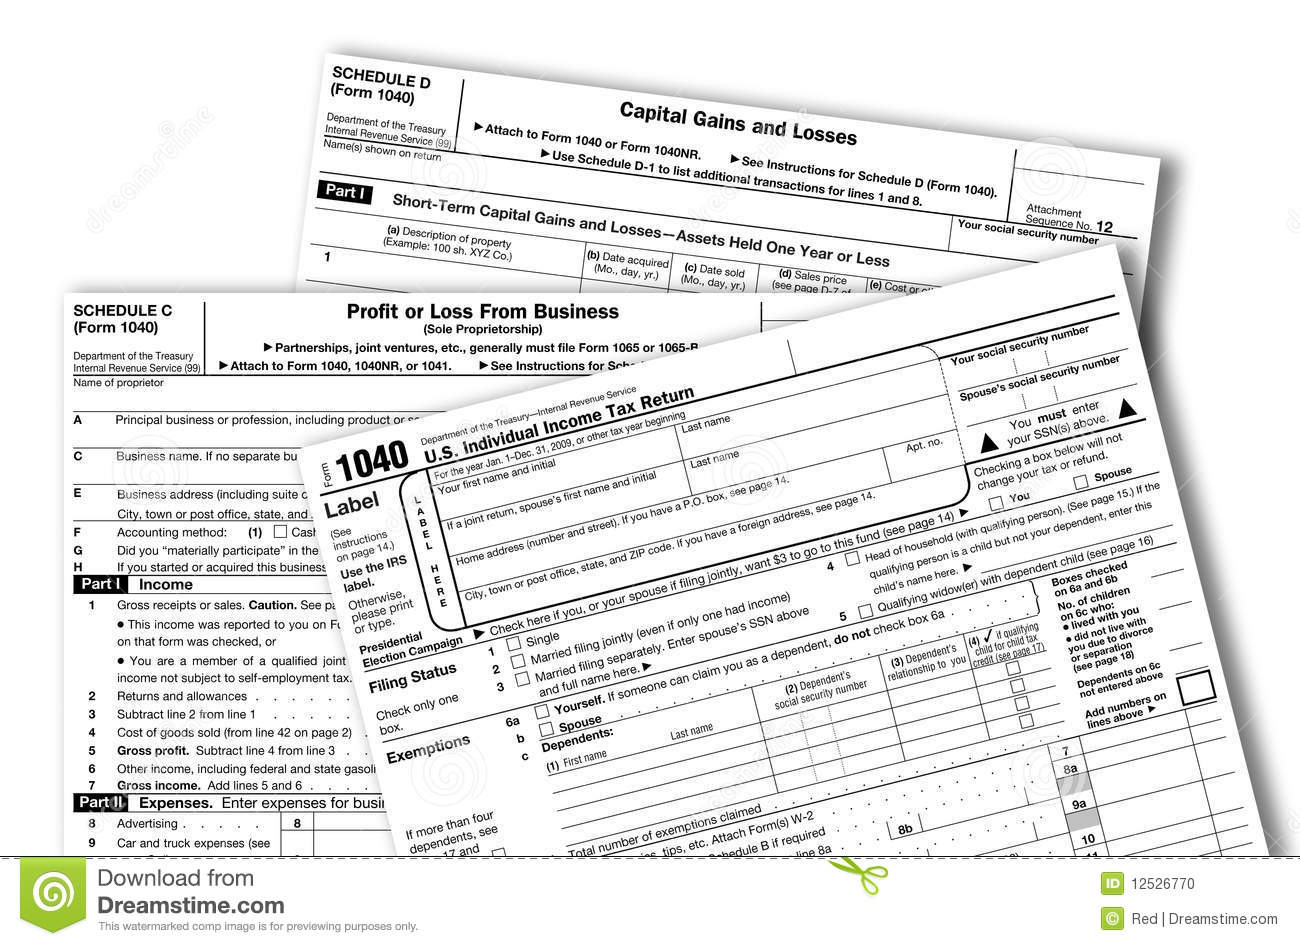 tax papers Find indiana tax forms know when i will receive my tax refund file my taxes as an indiana resident while i am in the military, but my spouse is not an indiana resident.